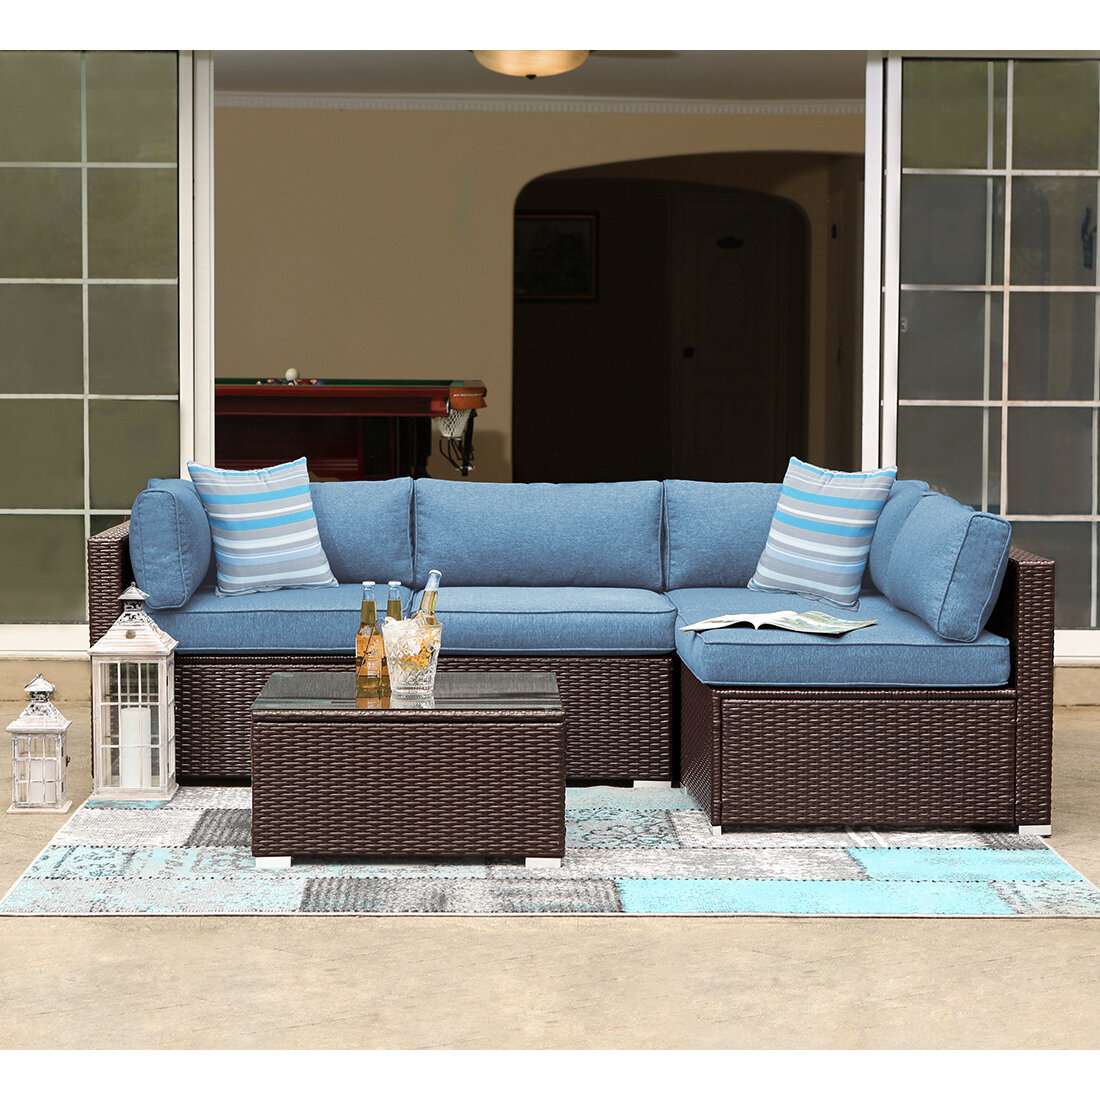 Bayou Breeze Maeve 5 Piece Rattan Sectional Seating Group With Cushions Reviews Wayfair